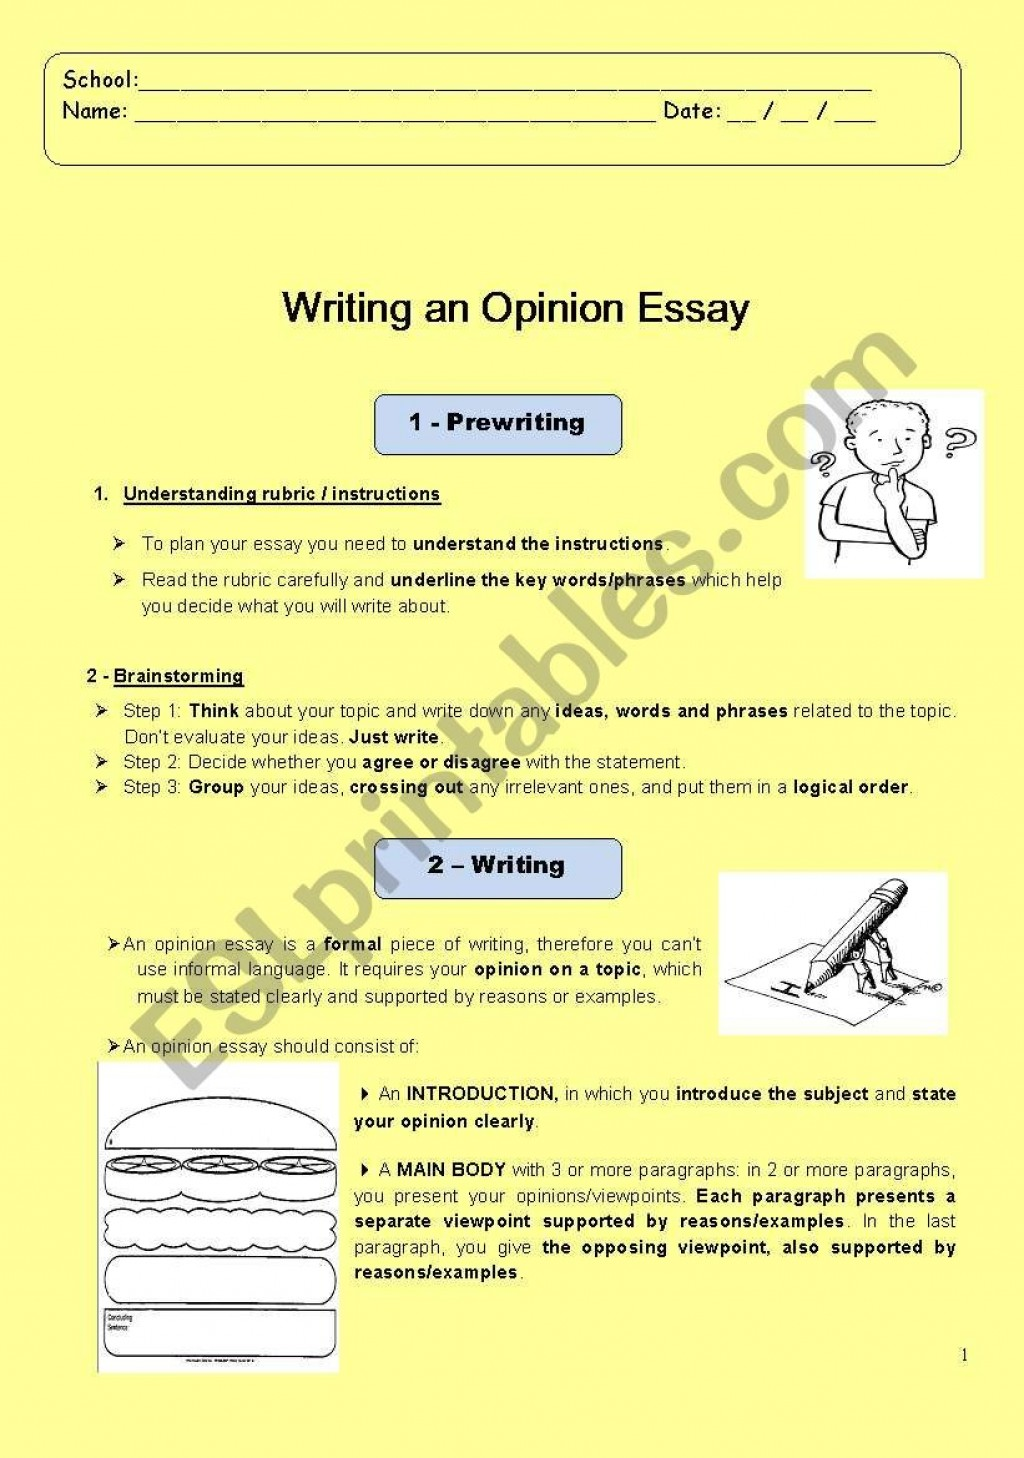 014 How To Write An Opinion Essay 519469 1 Unbelievable Conclusion On A Book Video Large